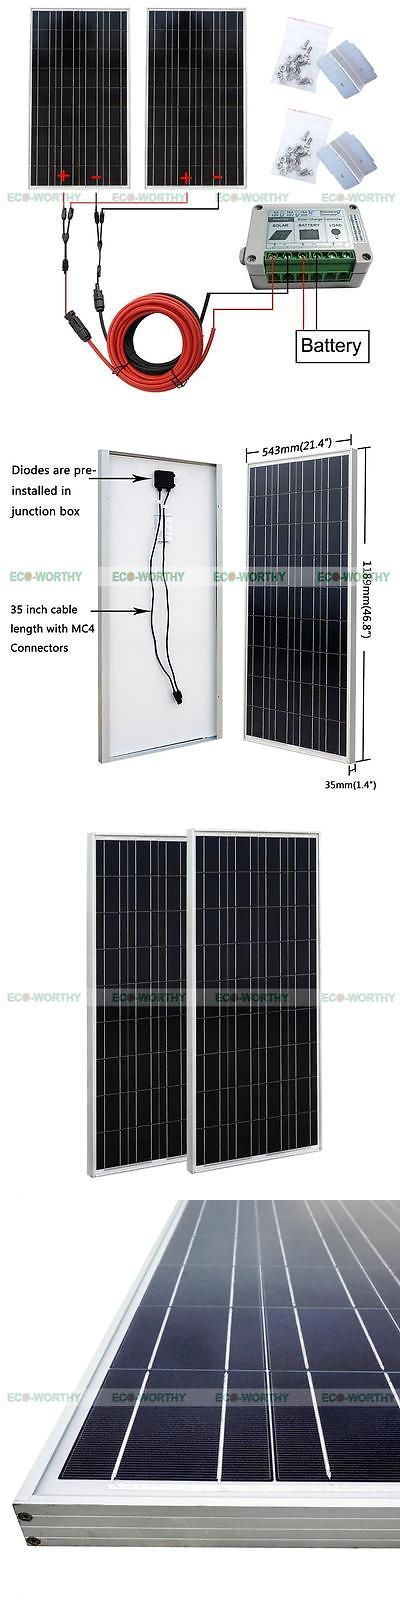 Solar Panels 41981: 2*100W Complete Kit: 200W Watts Pv Solar Panel With Controller Off Grid Rv Boat -> BUY IT NOW ONLY: $287.99 on eBay!